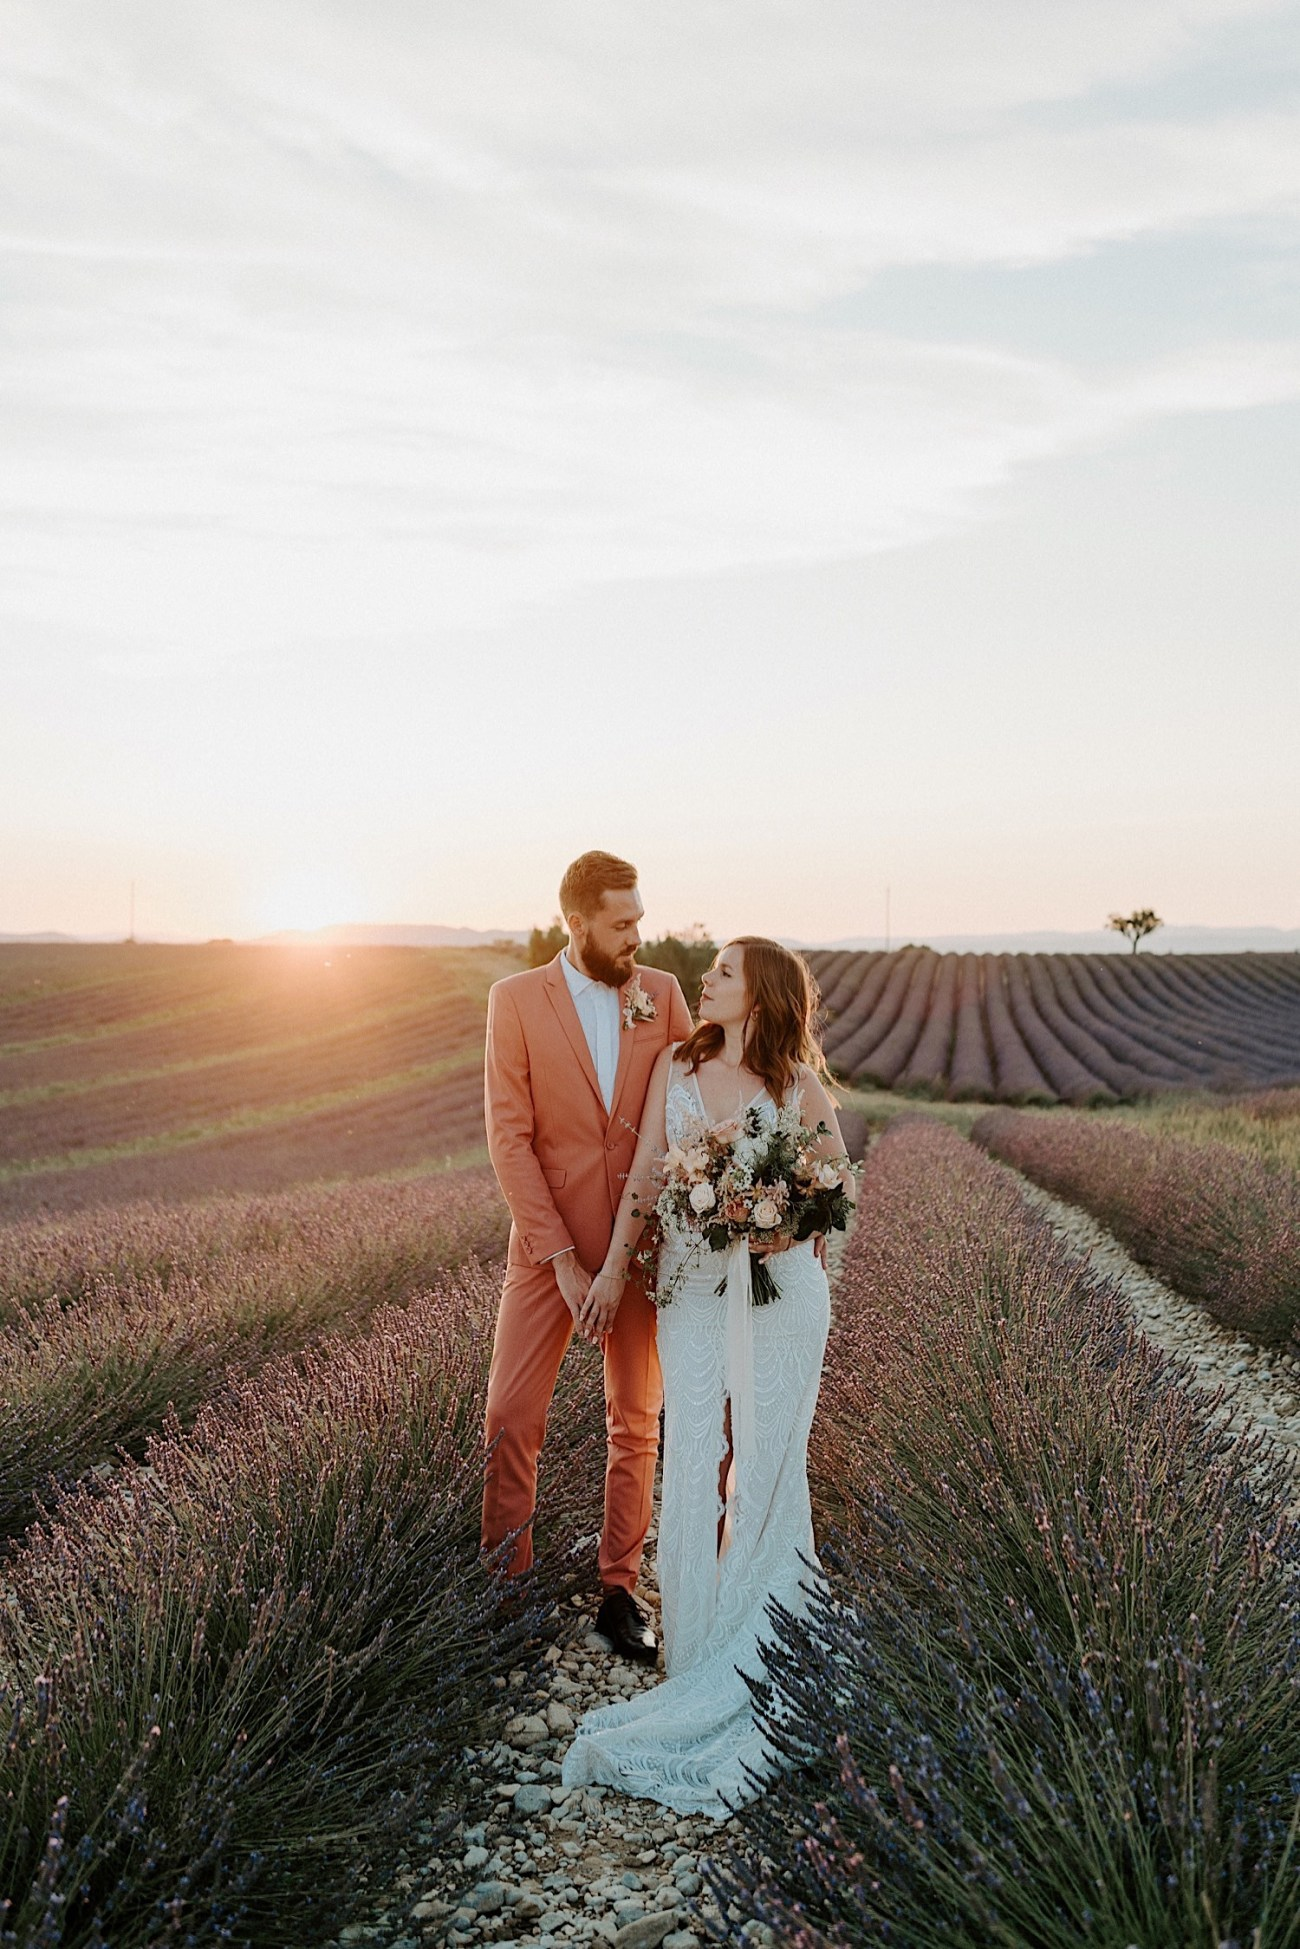 Valensole Wedding Photos Lavender Field Wedding Provence Wedding French Wedding Photographer Destination Wedding France Anais Possamai Photography 01